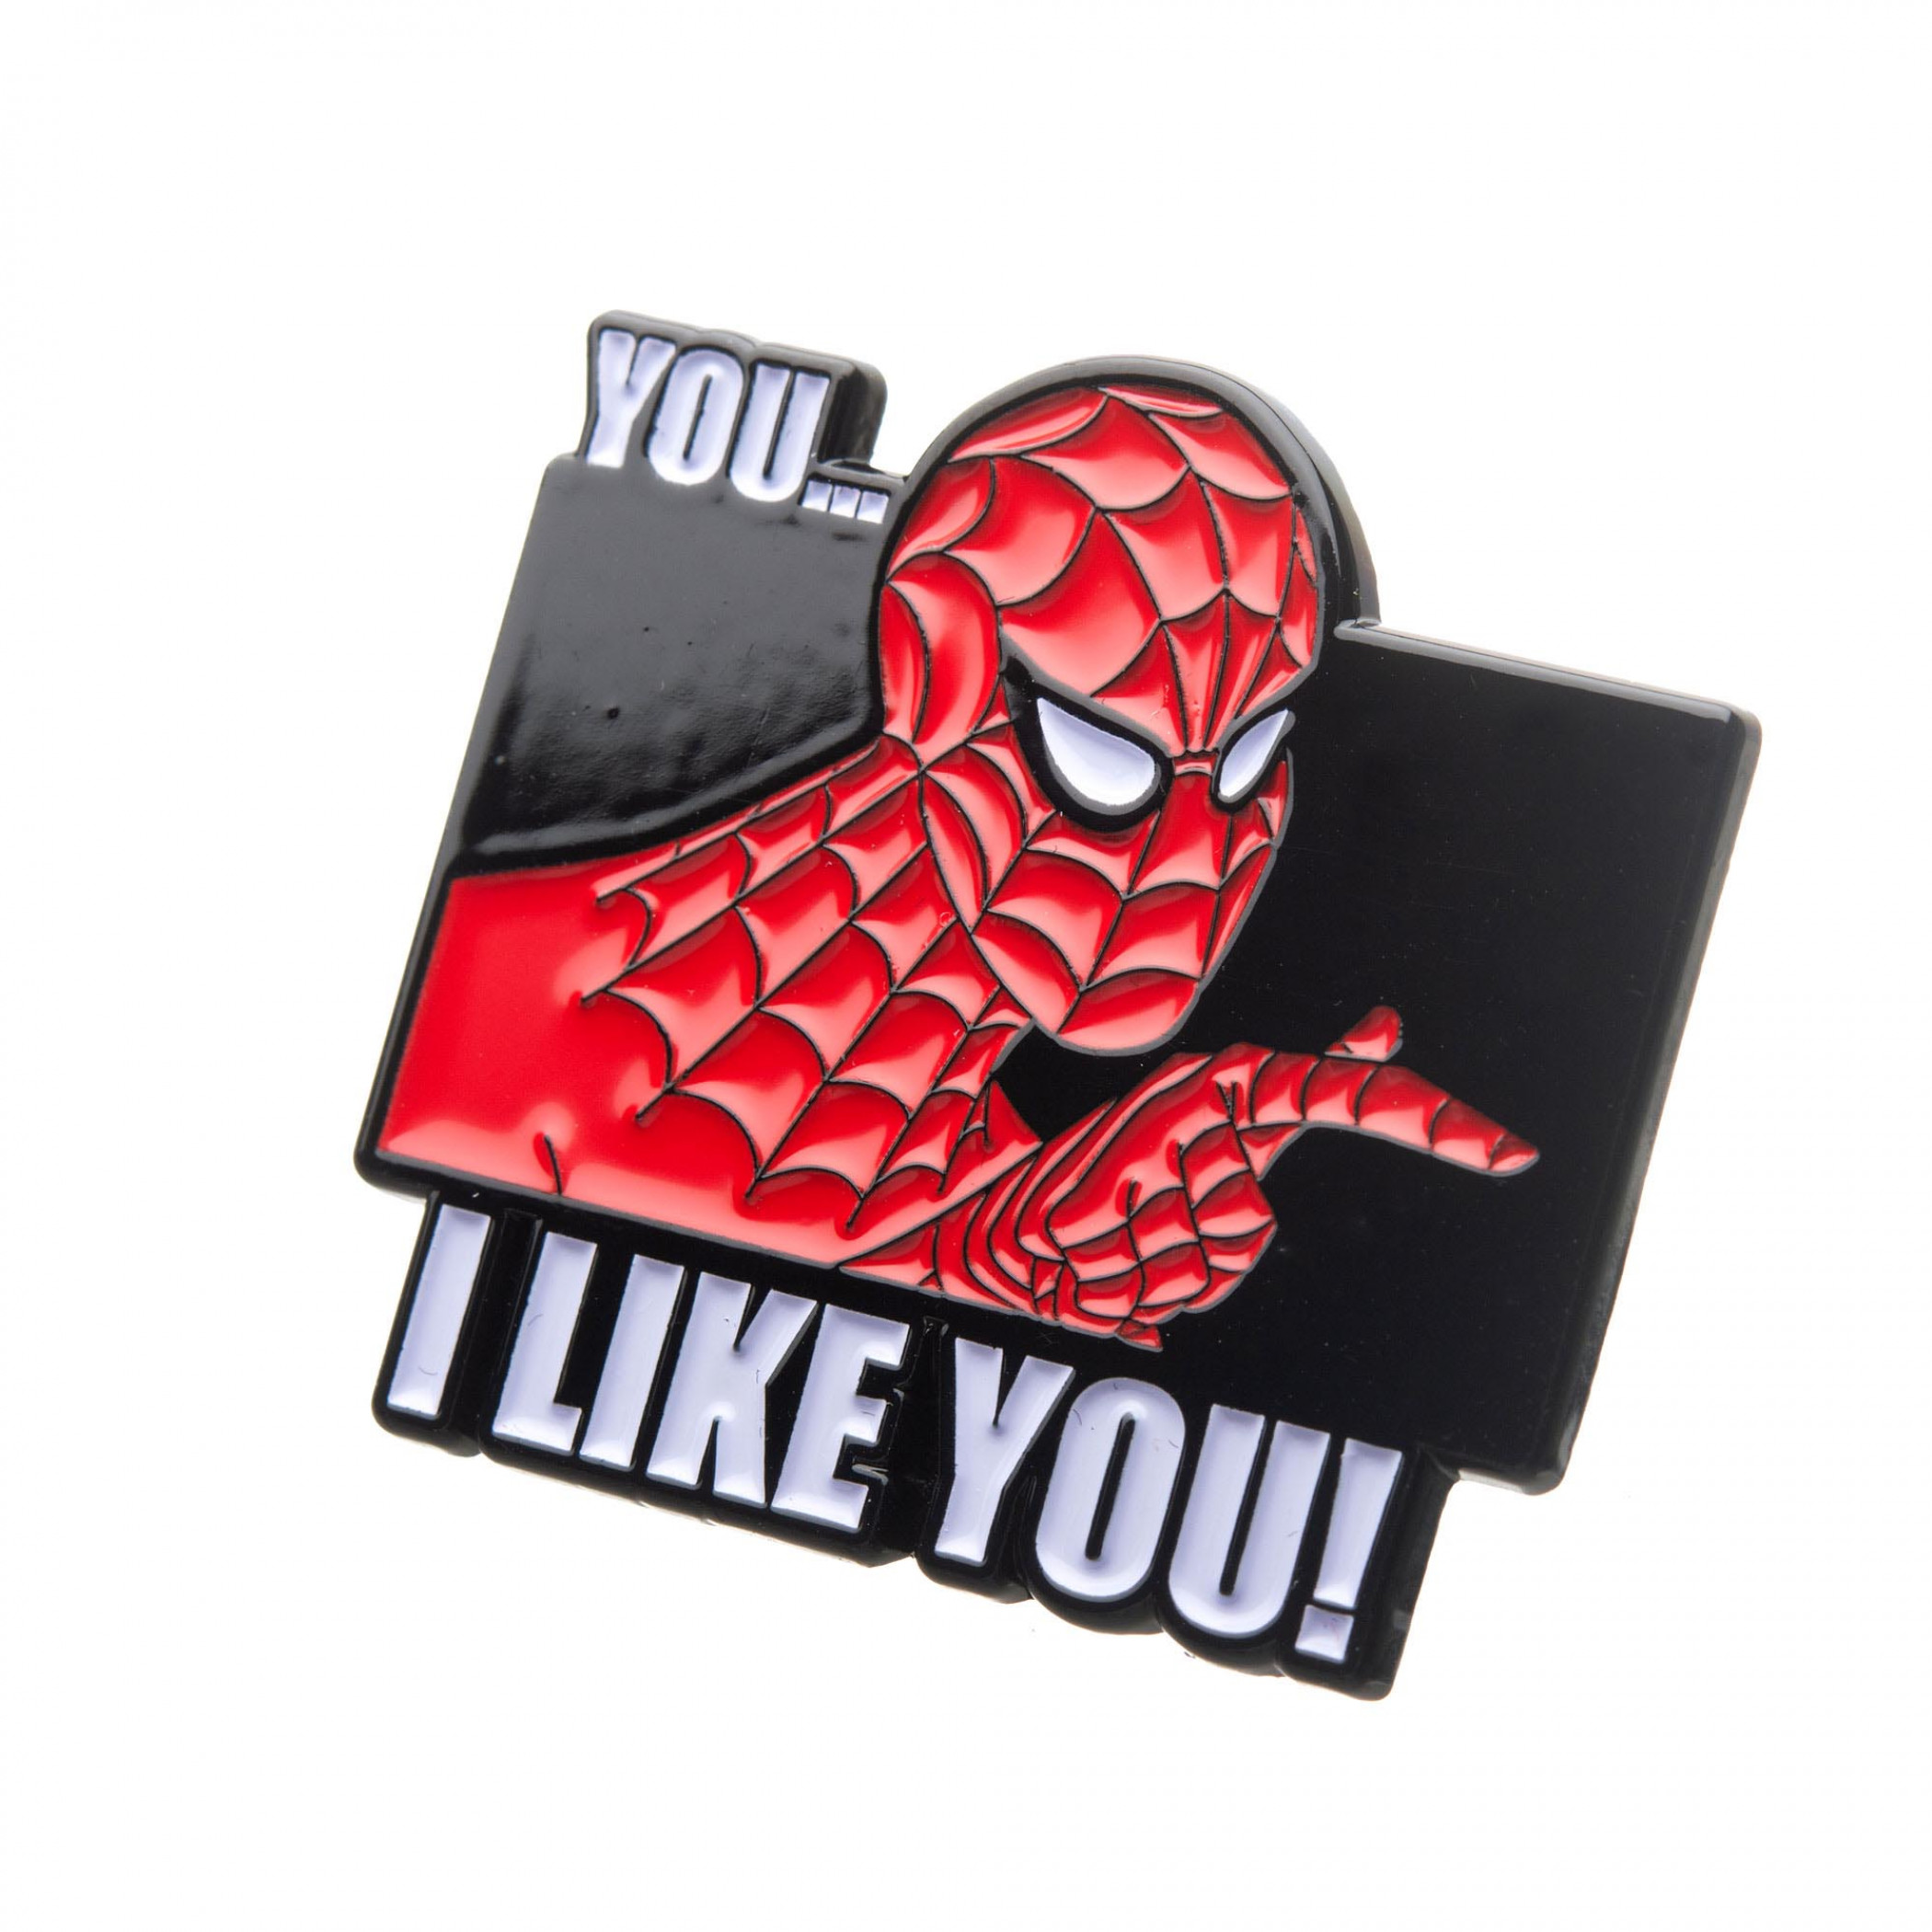 Spider-Man I Like You Pin